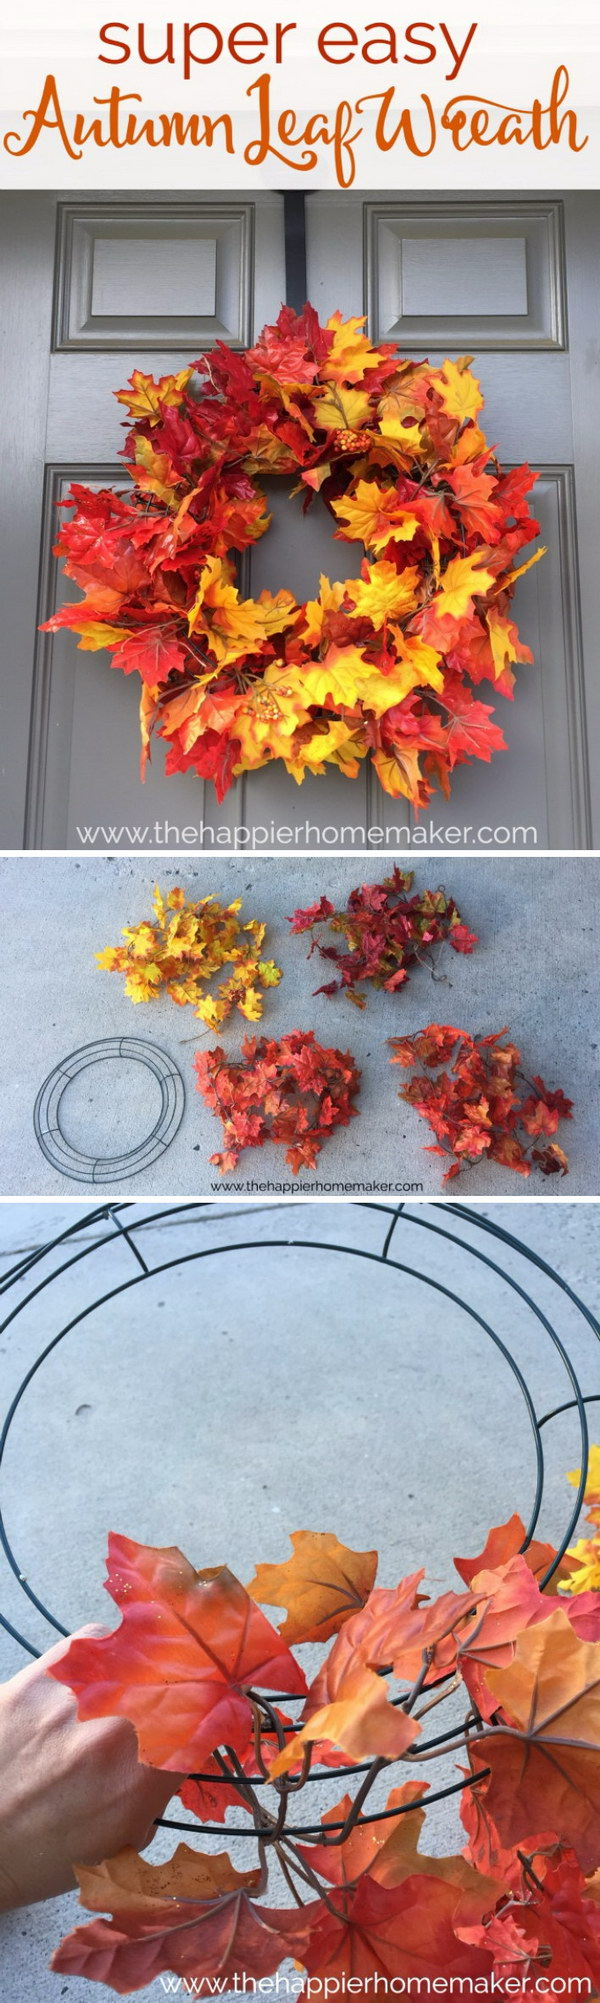 5 Minute Autumn Leaf Wreath.